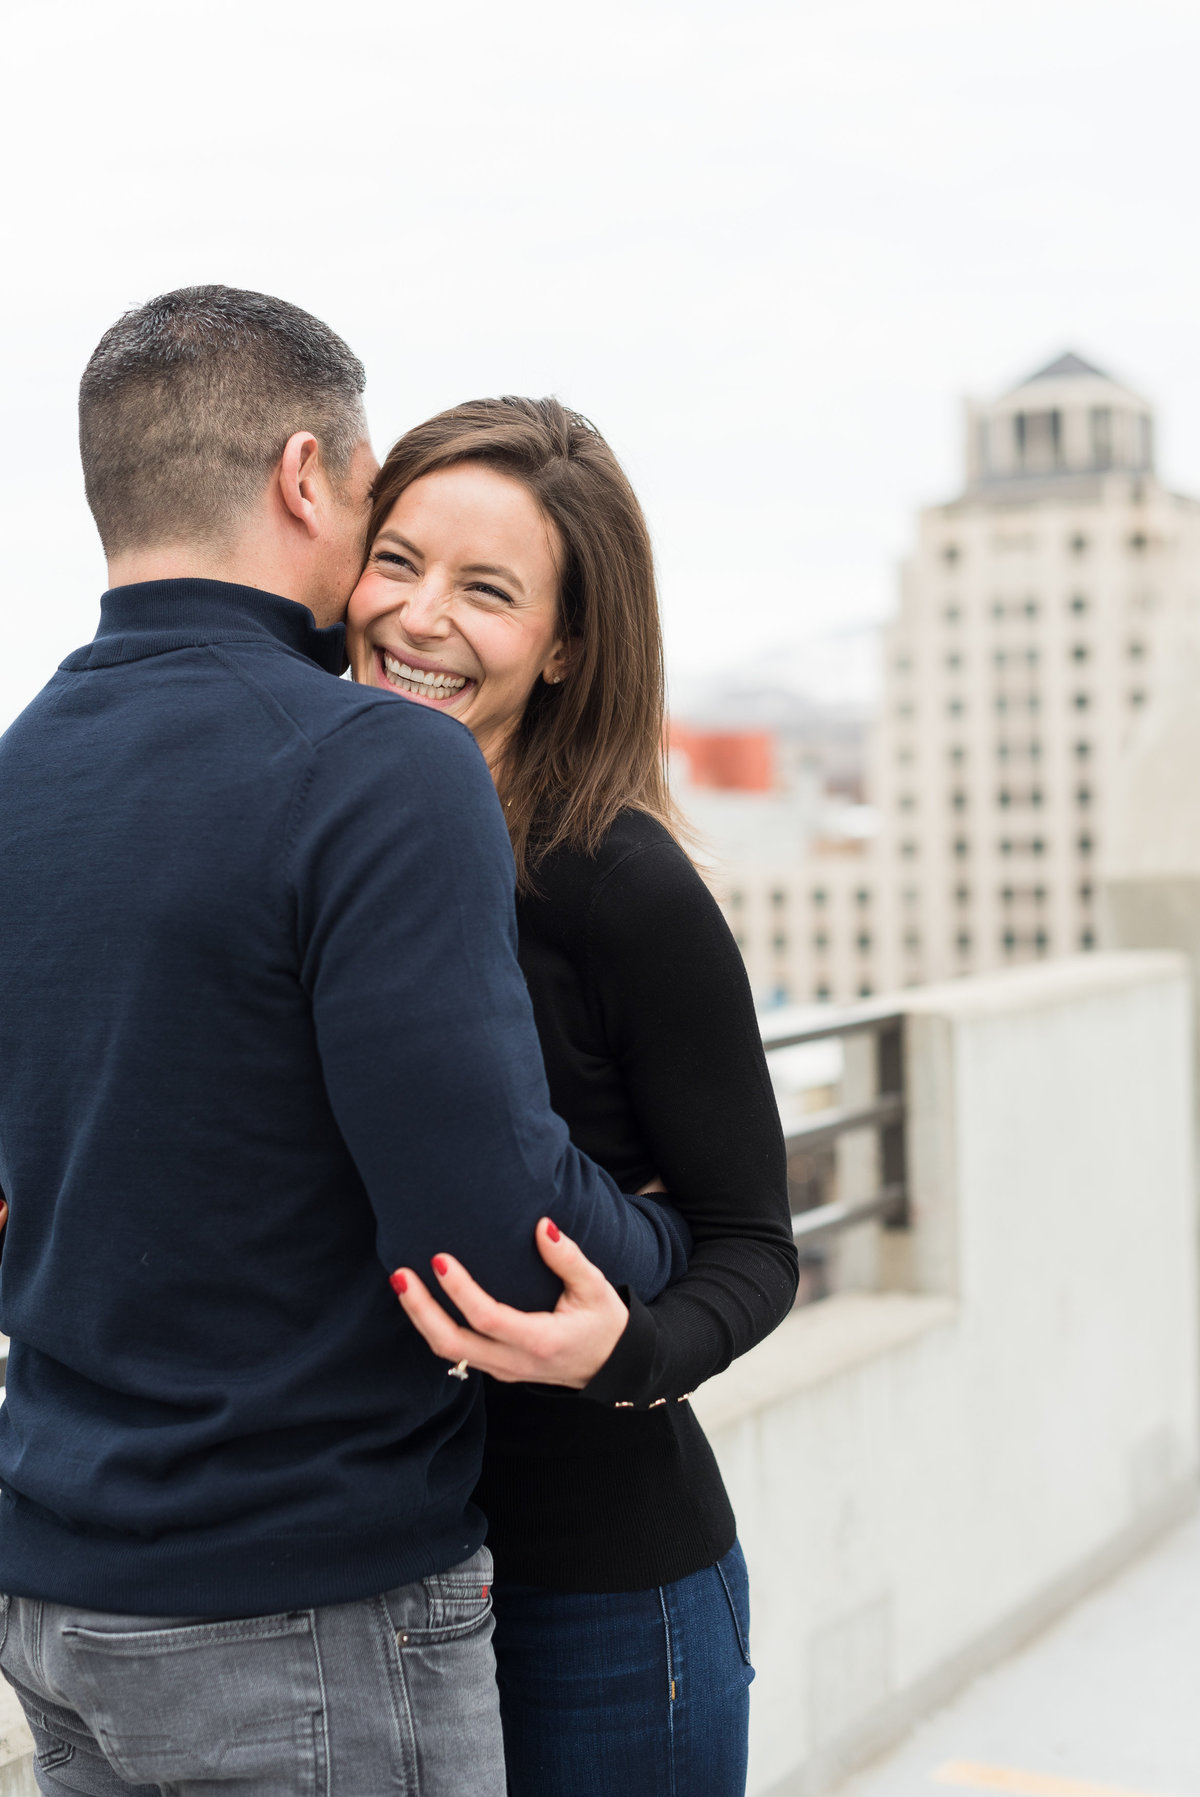 A Winter Downtown Boise Rooftop Engagement Shoot 002